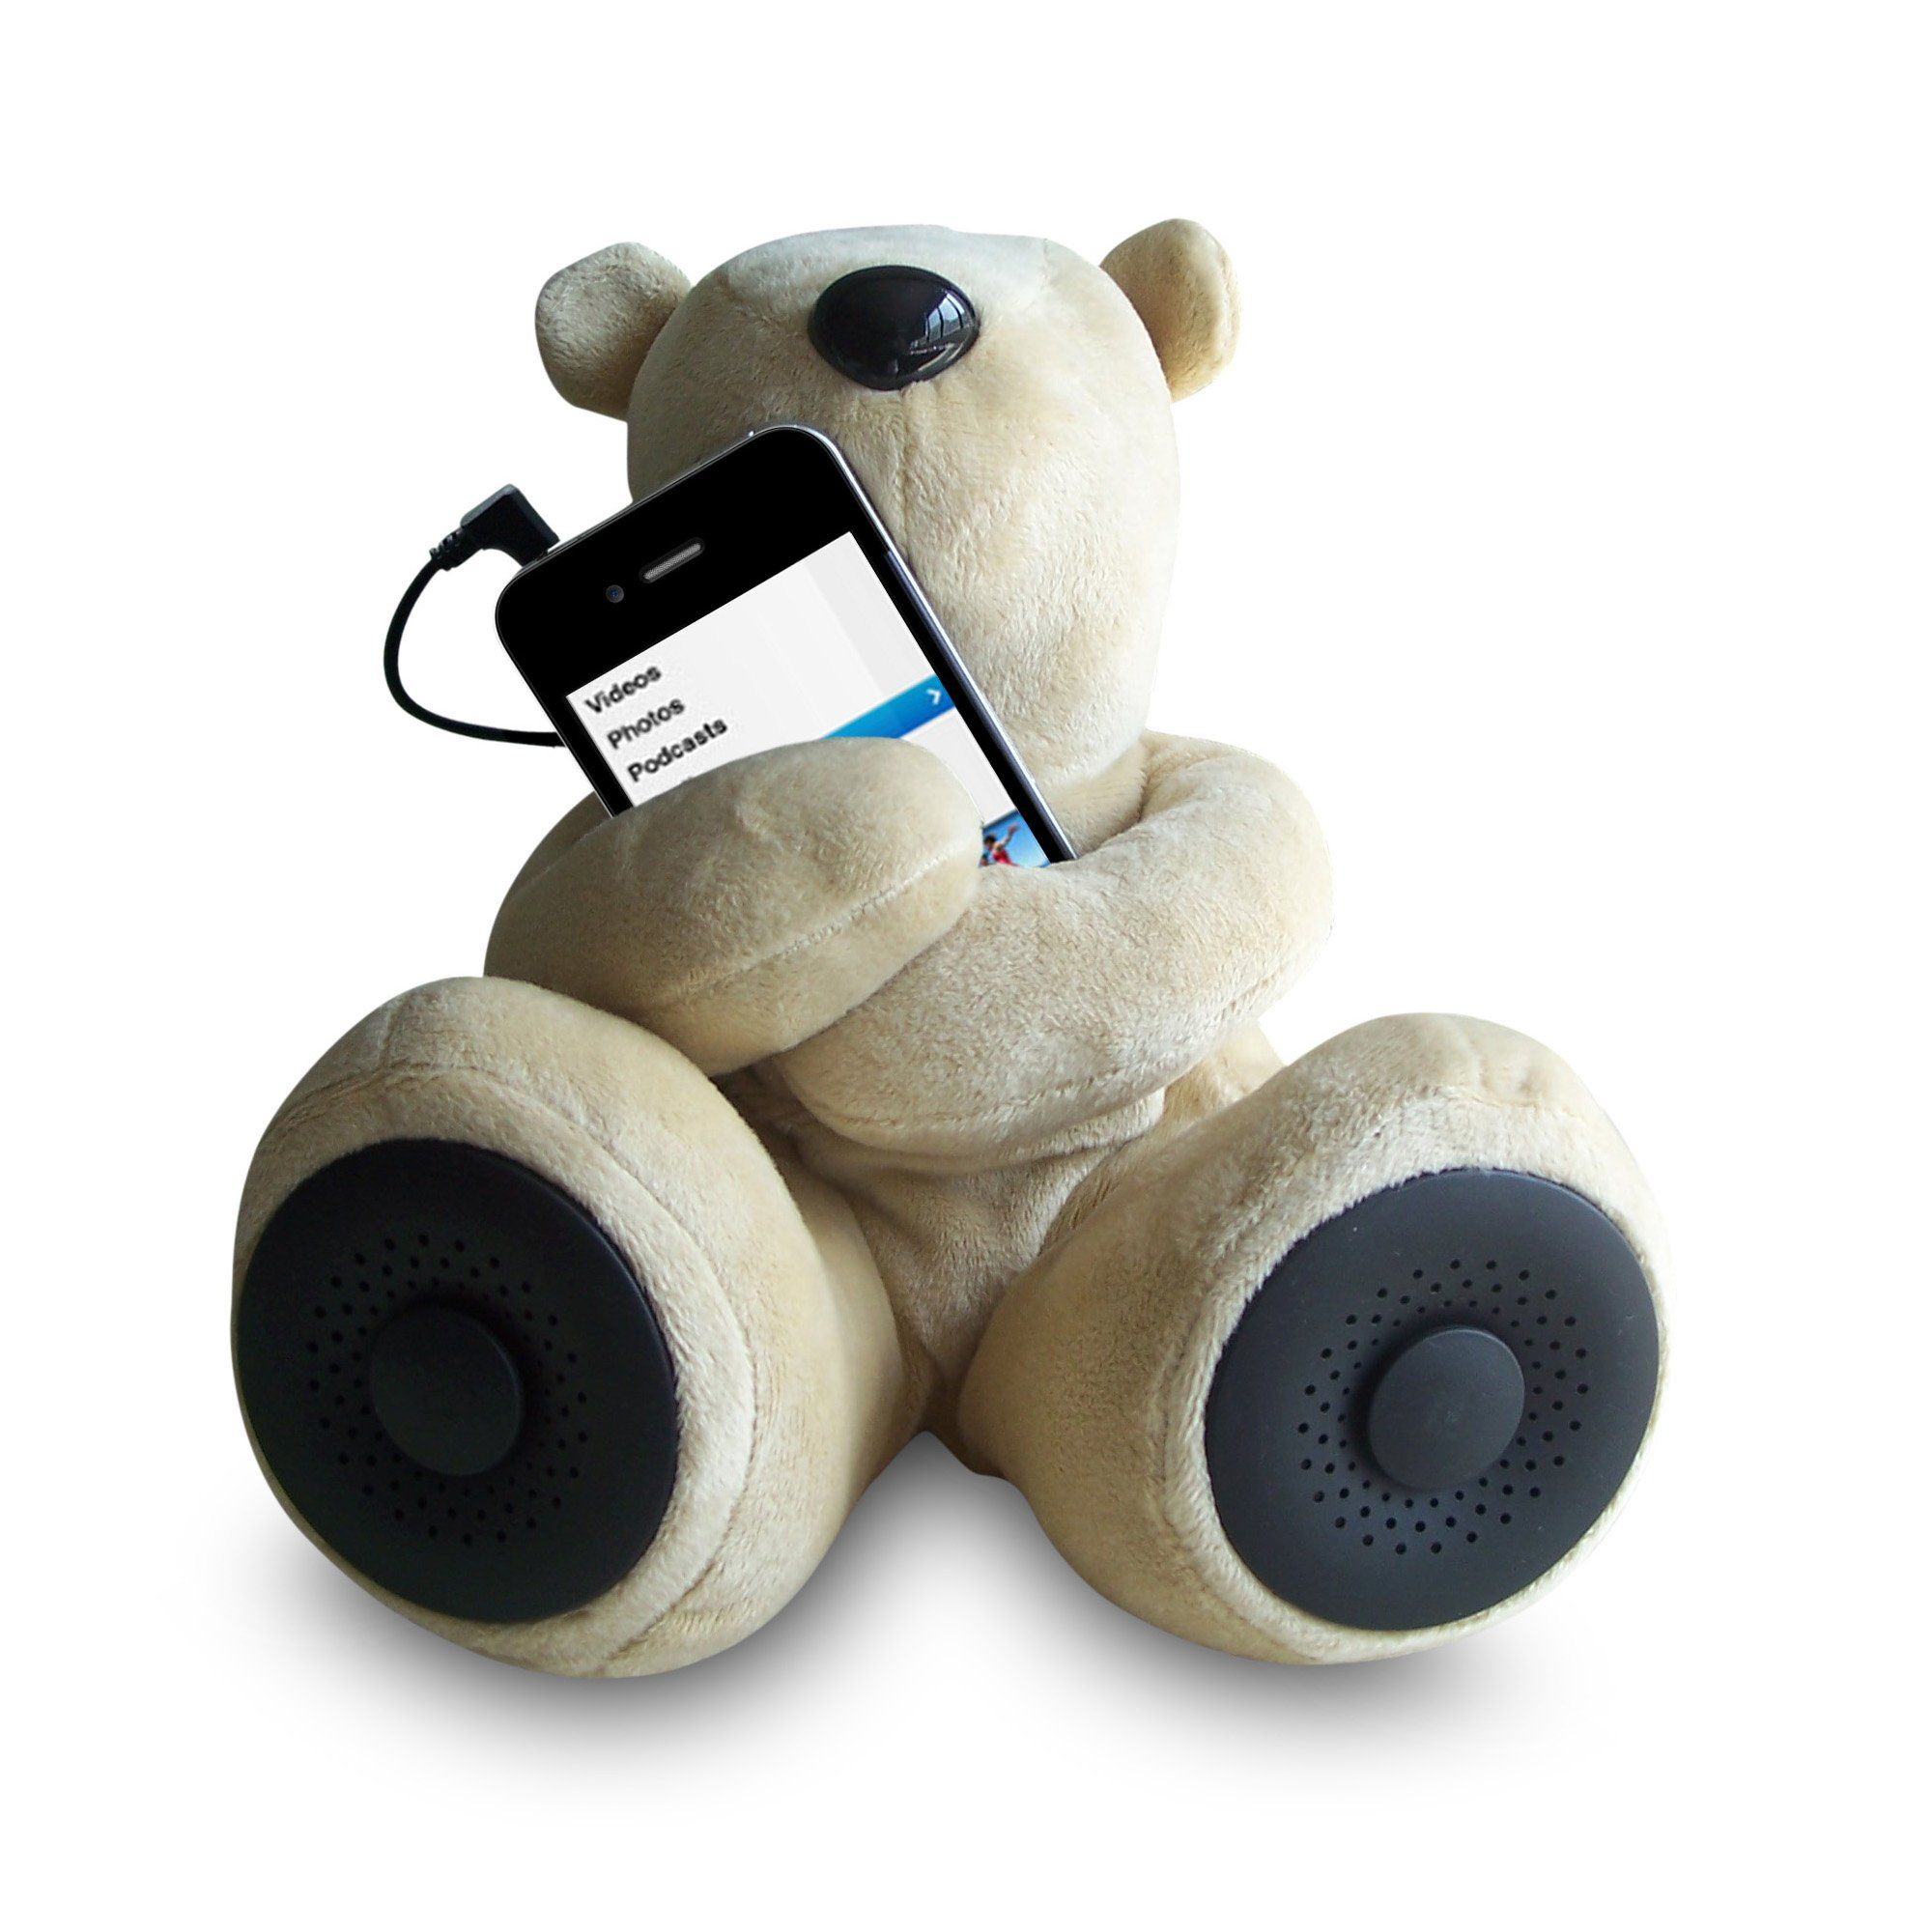 Sungale S-T1 Teddy Speaker for iPod Smartphone MP3 iPhone